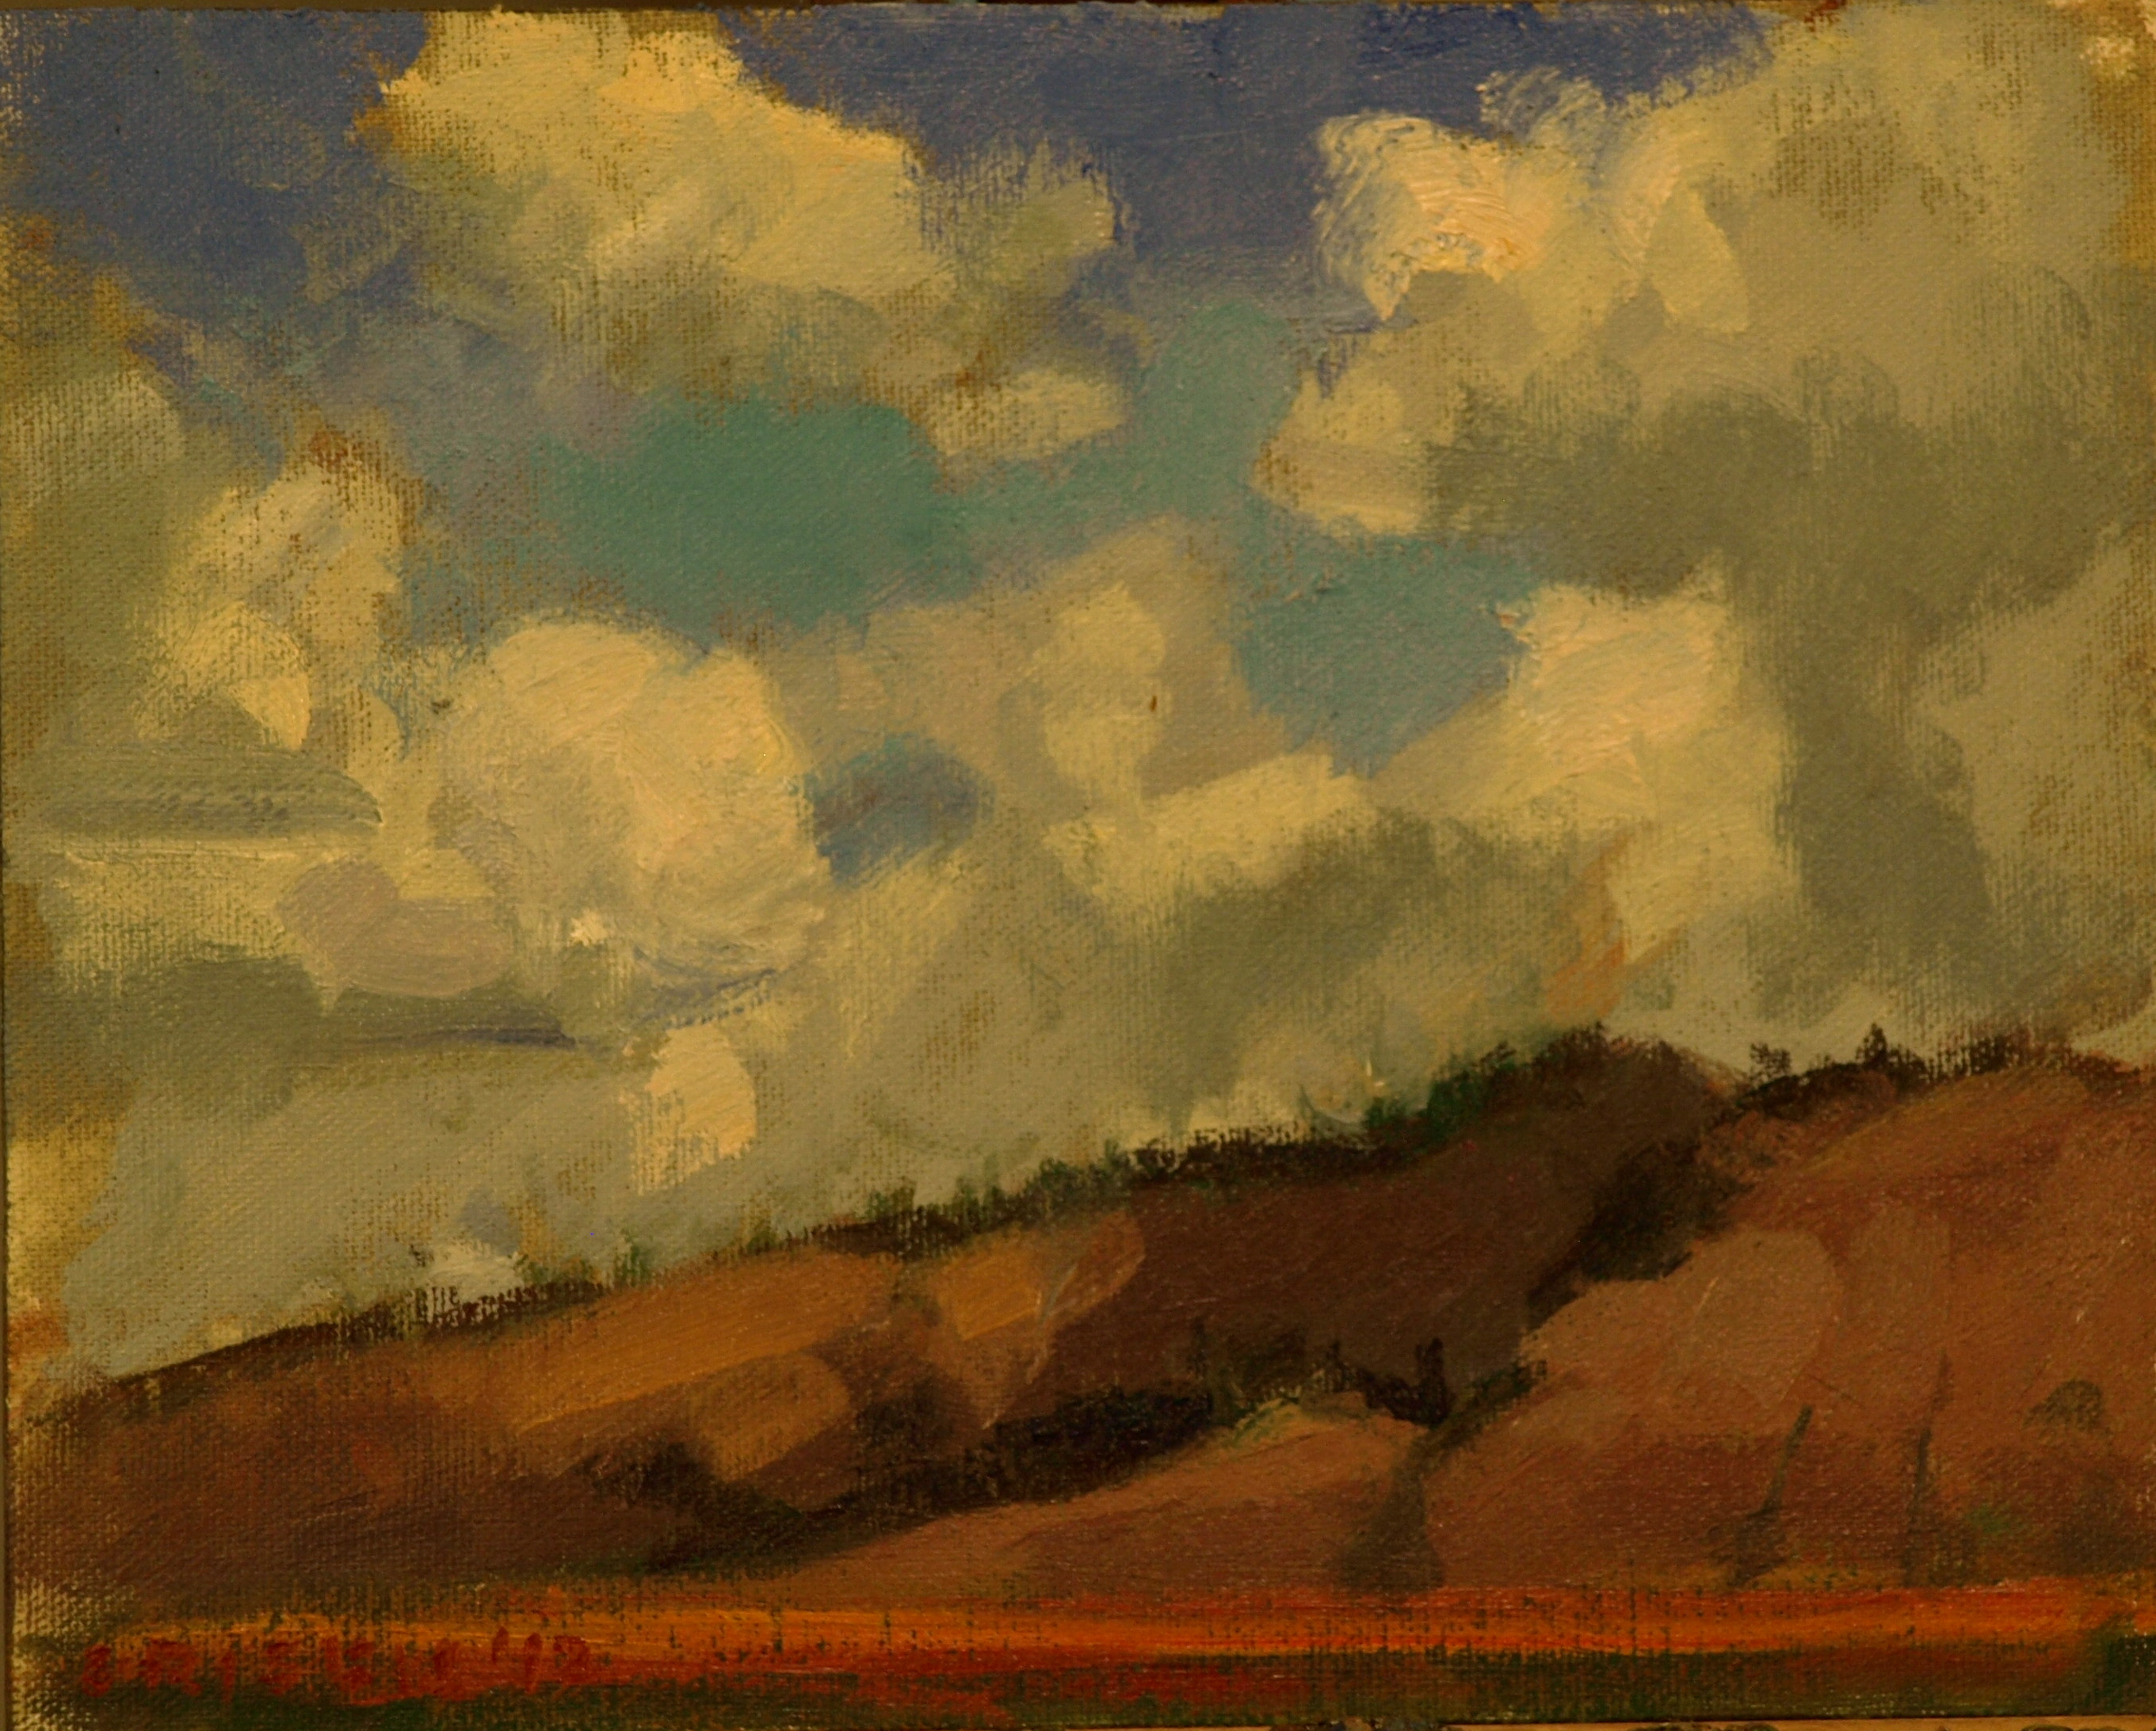 Clouds -- Wyoming, Oil on Canvas on Panel, 8 x 10 Inches, by Susan Grisell, $150